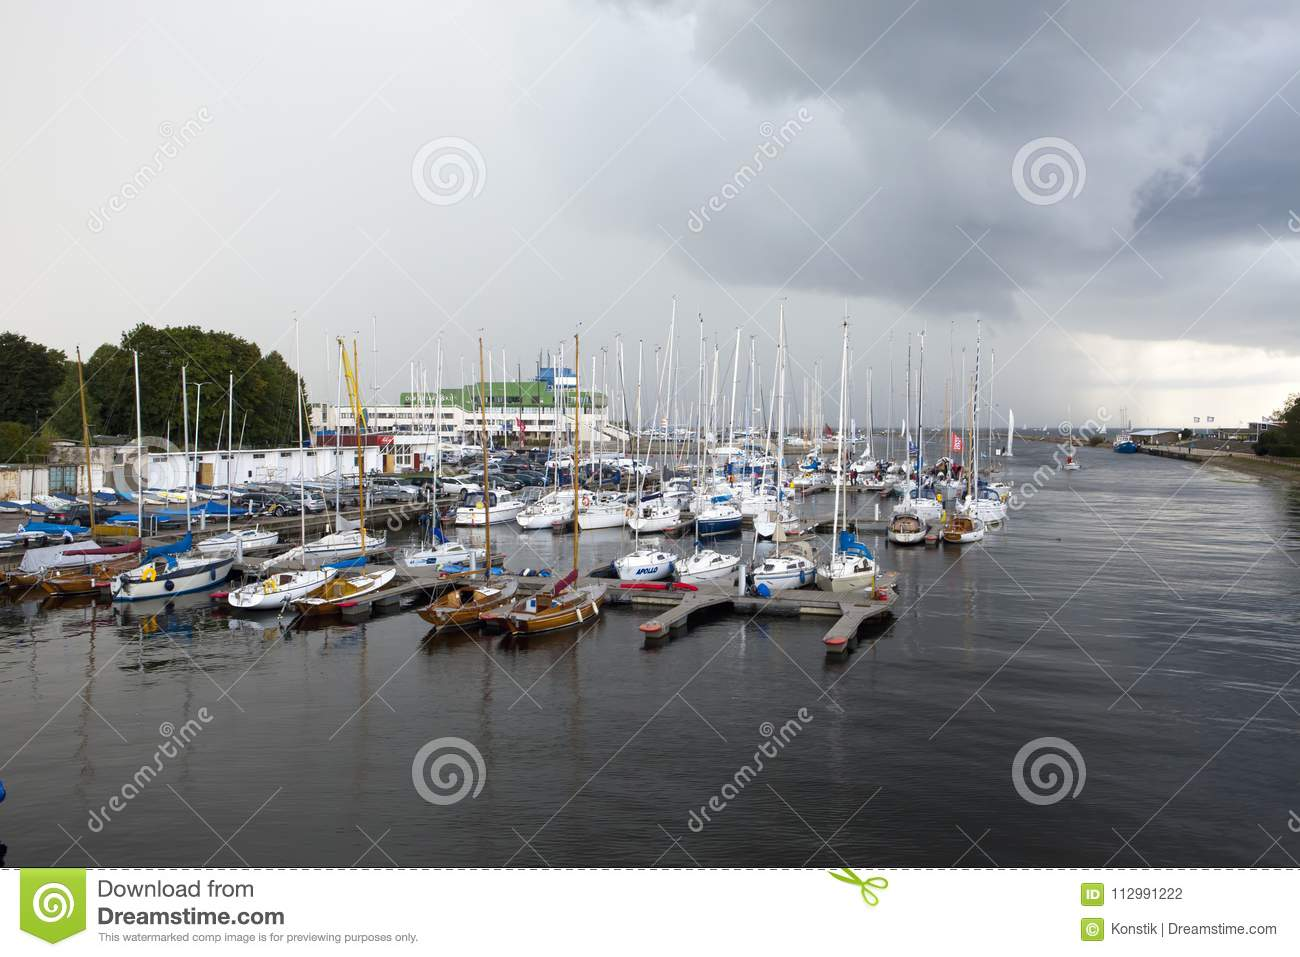 TALLINN, ESTONIA- SEPTEMBER 7, 2015: Parking of small size vessels, yachts in the Tallinn Pirita Harbour and Kalev Yacht Club, the